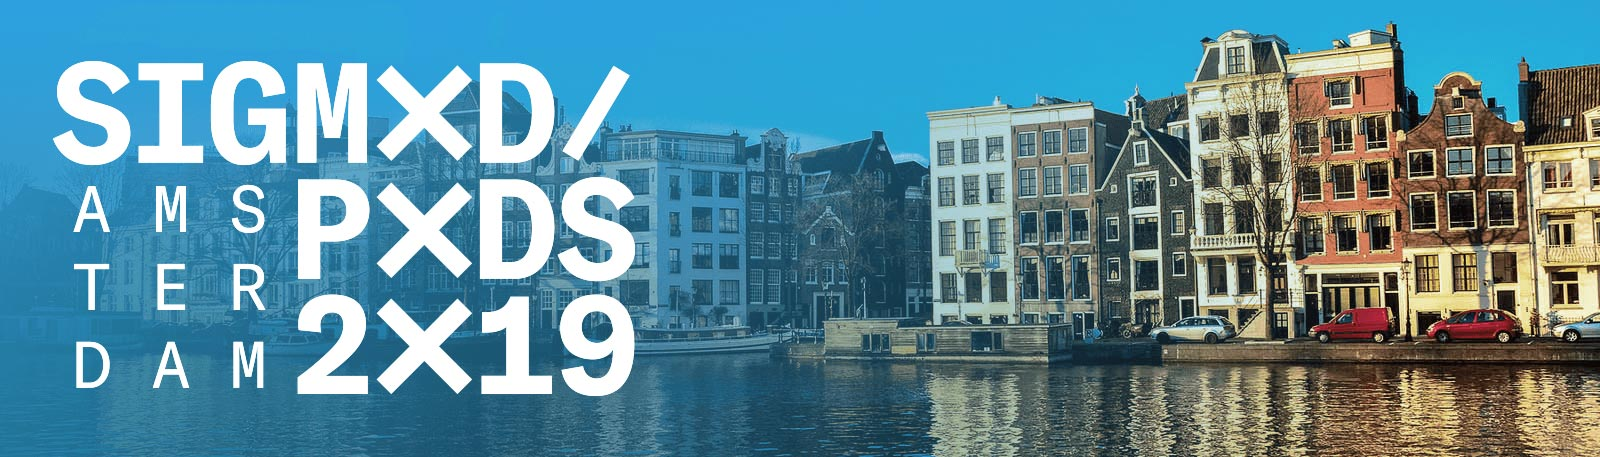 SIGMOD 2019: Accepted Research Papers | SIGMOD/PODS 2019